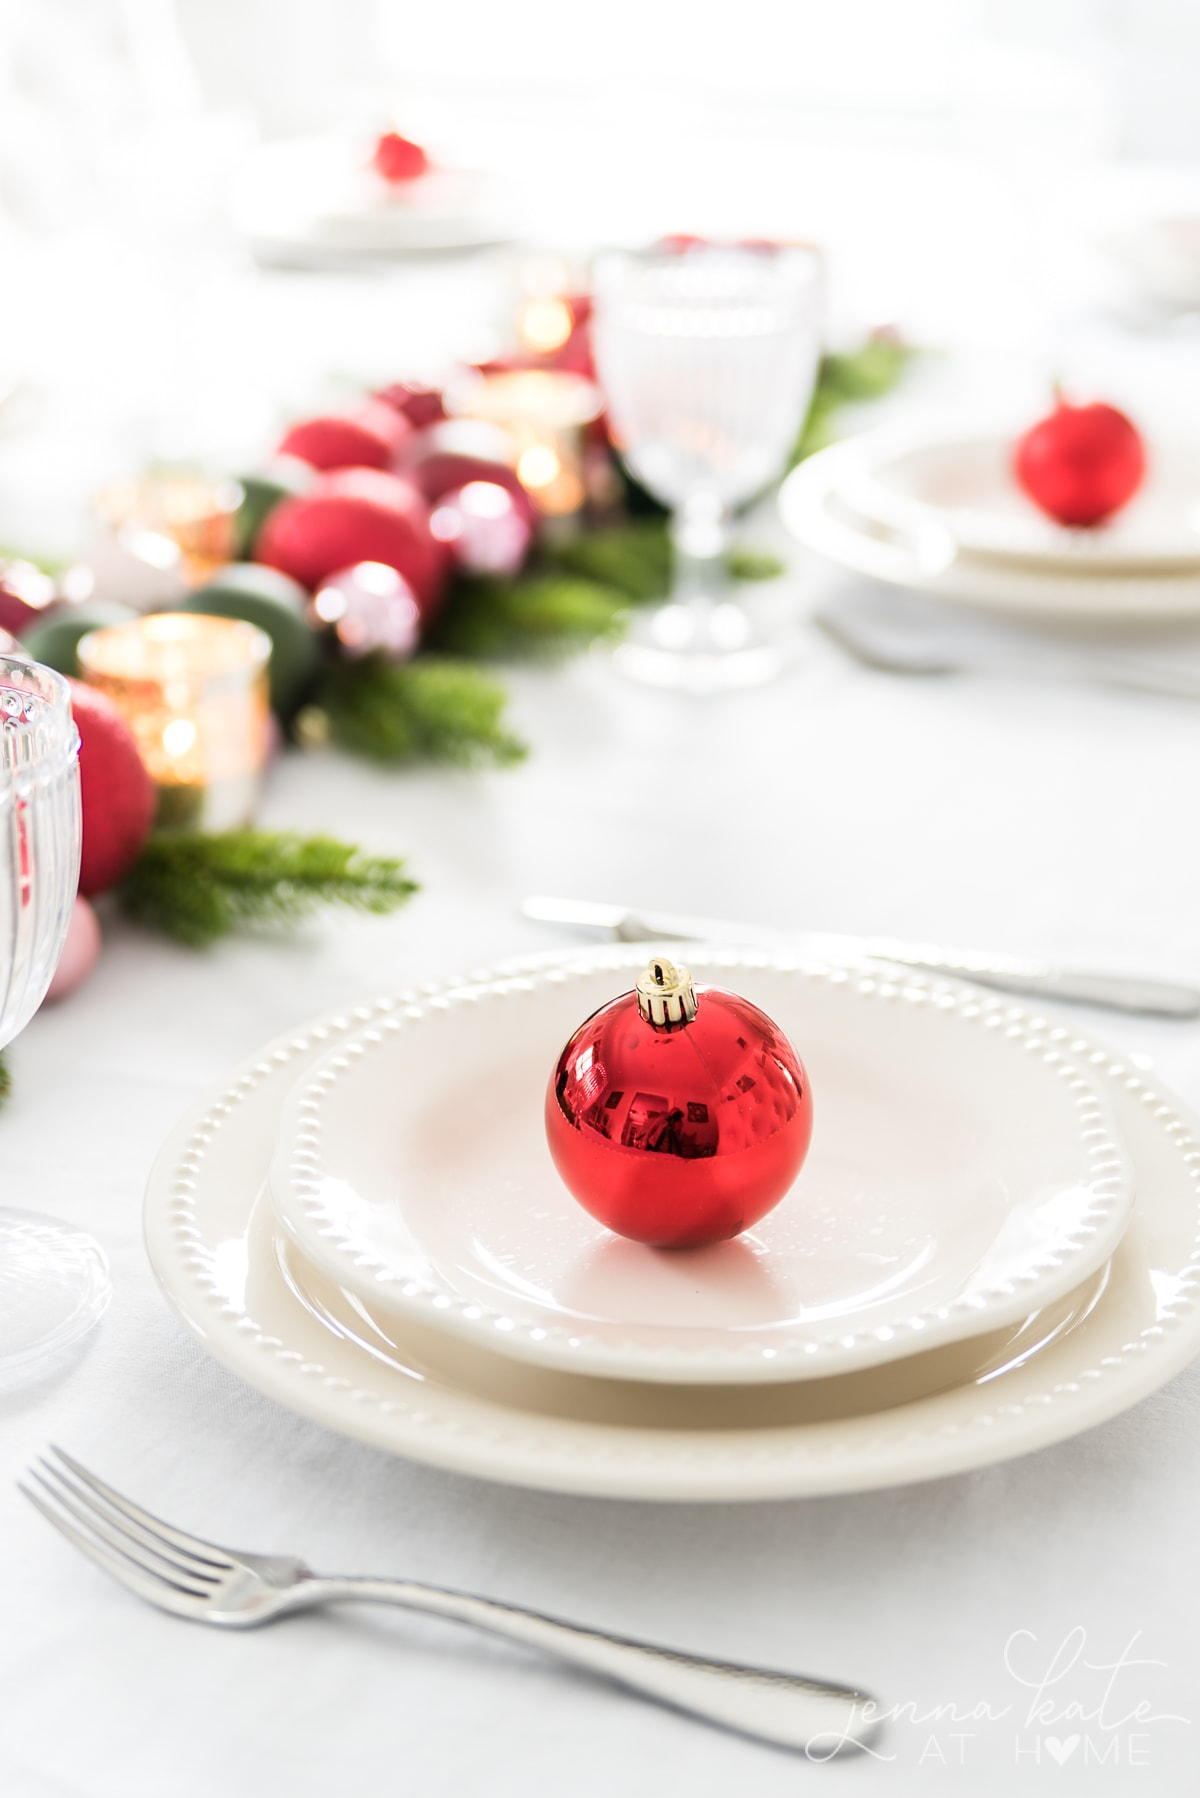 Festive Christmas table centerpiece using tree ornaments, votives and greenery